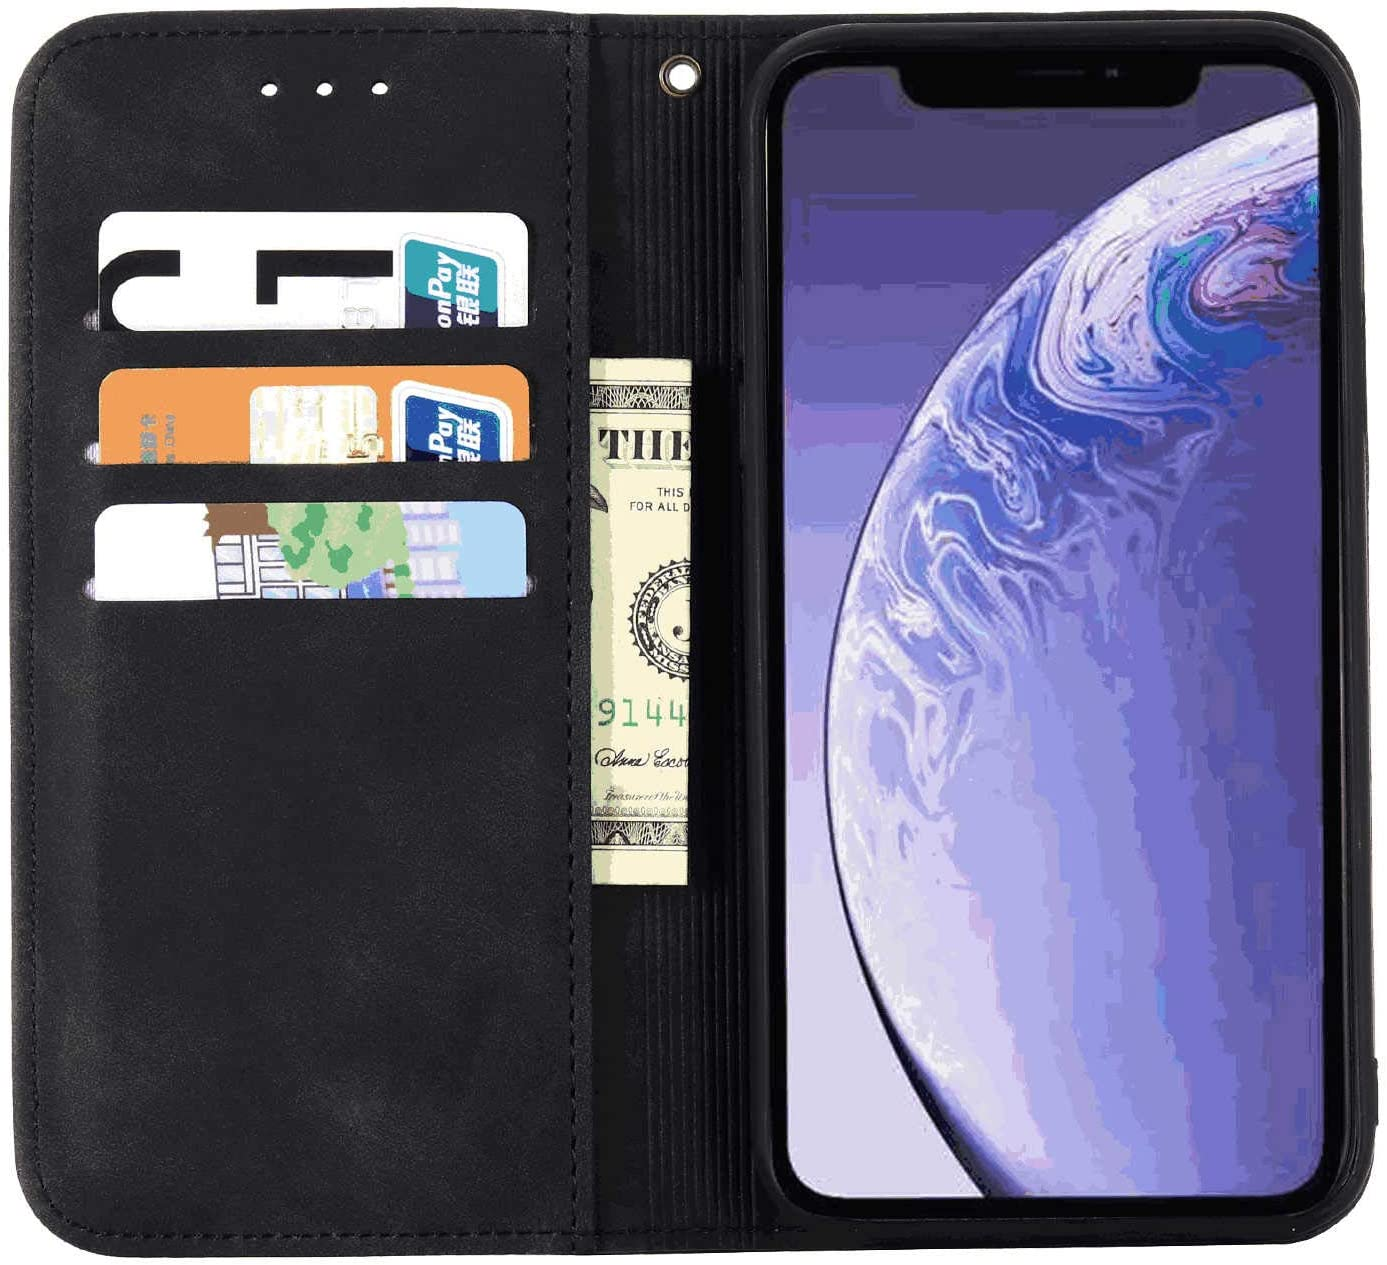 Cover for Leather Kickstand Wallet case Card Holders Extra-Shockproof Business Flip Cover iPhone 7 Plus Flip Case